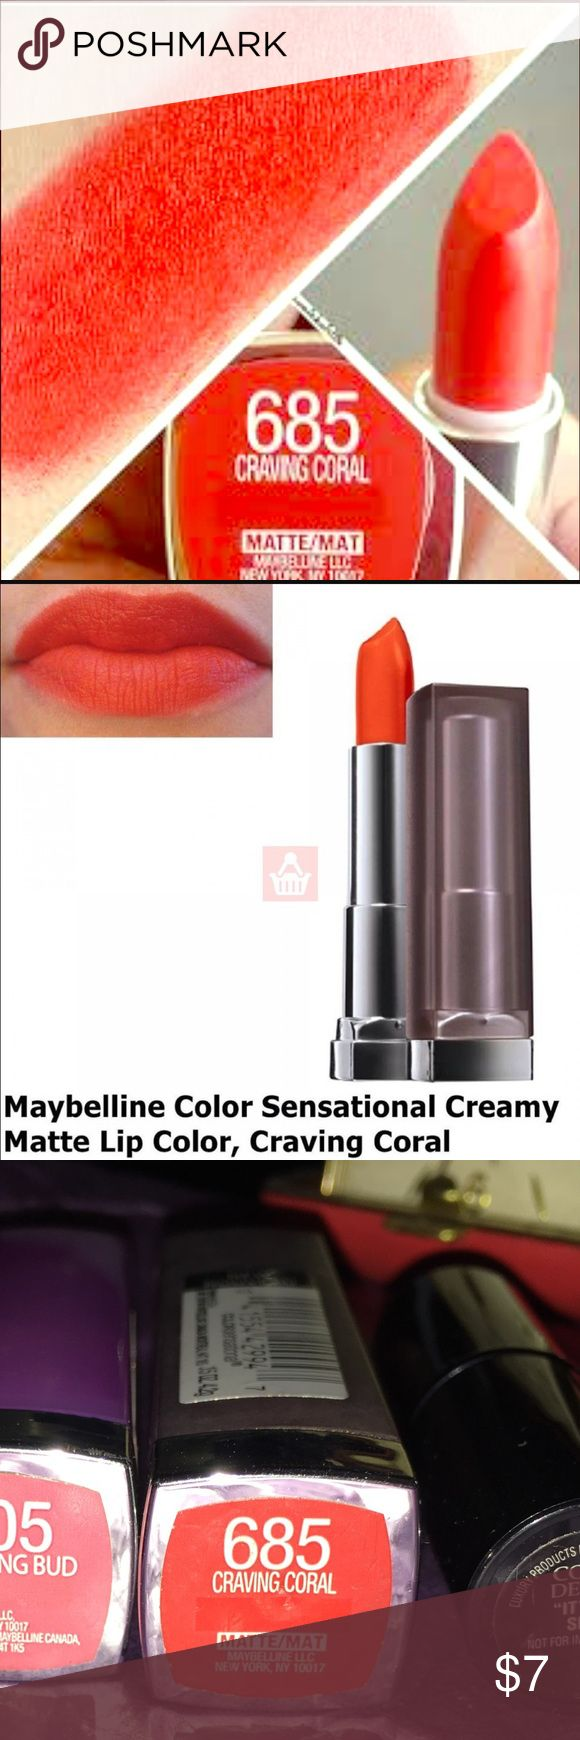 25+ best ideas about Maybelline lipstick price on Pinterest ...